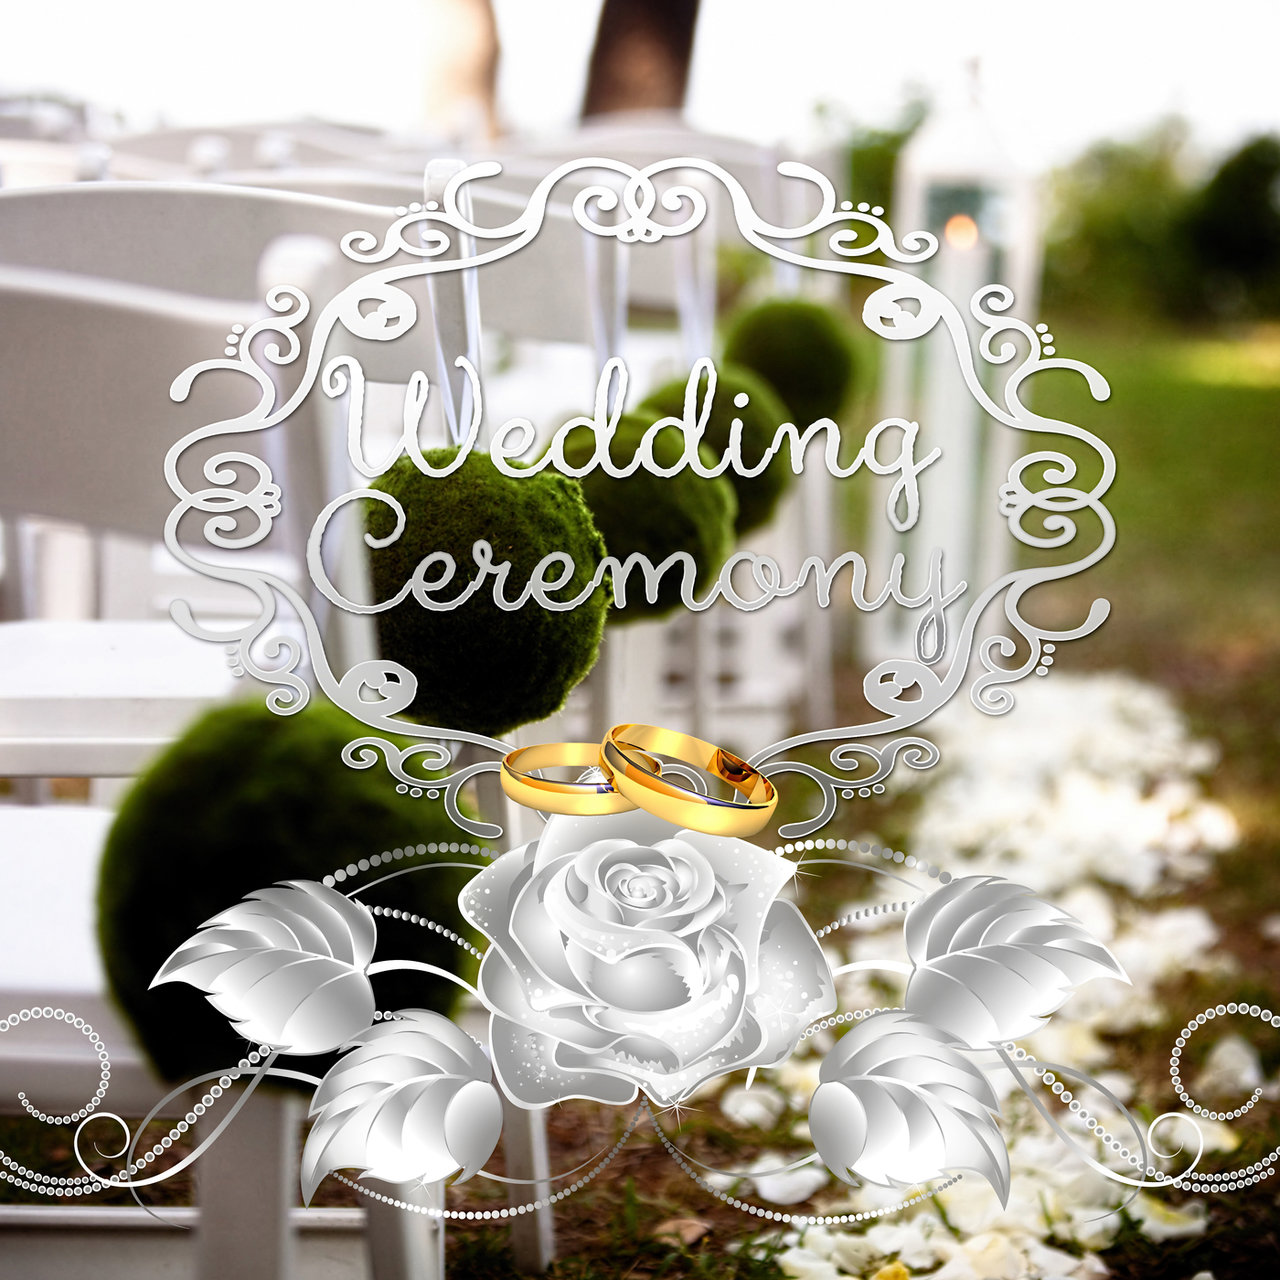 Tidal Listen To Instrumental Wedding Music Romantic Music For